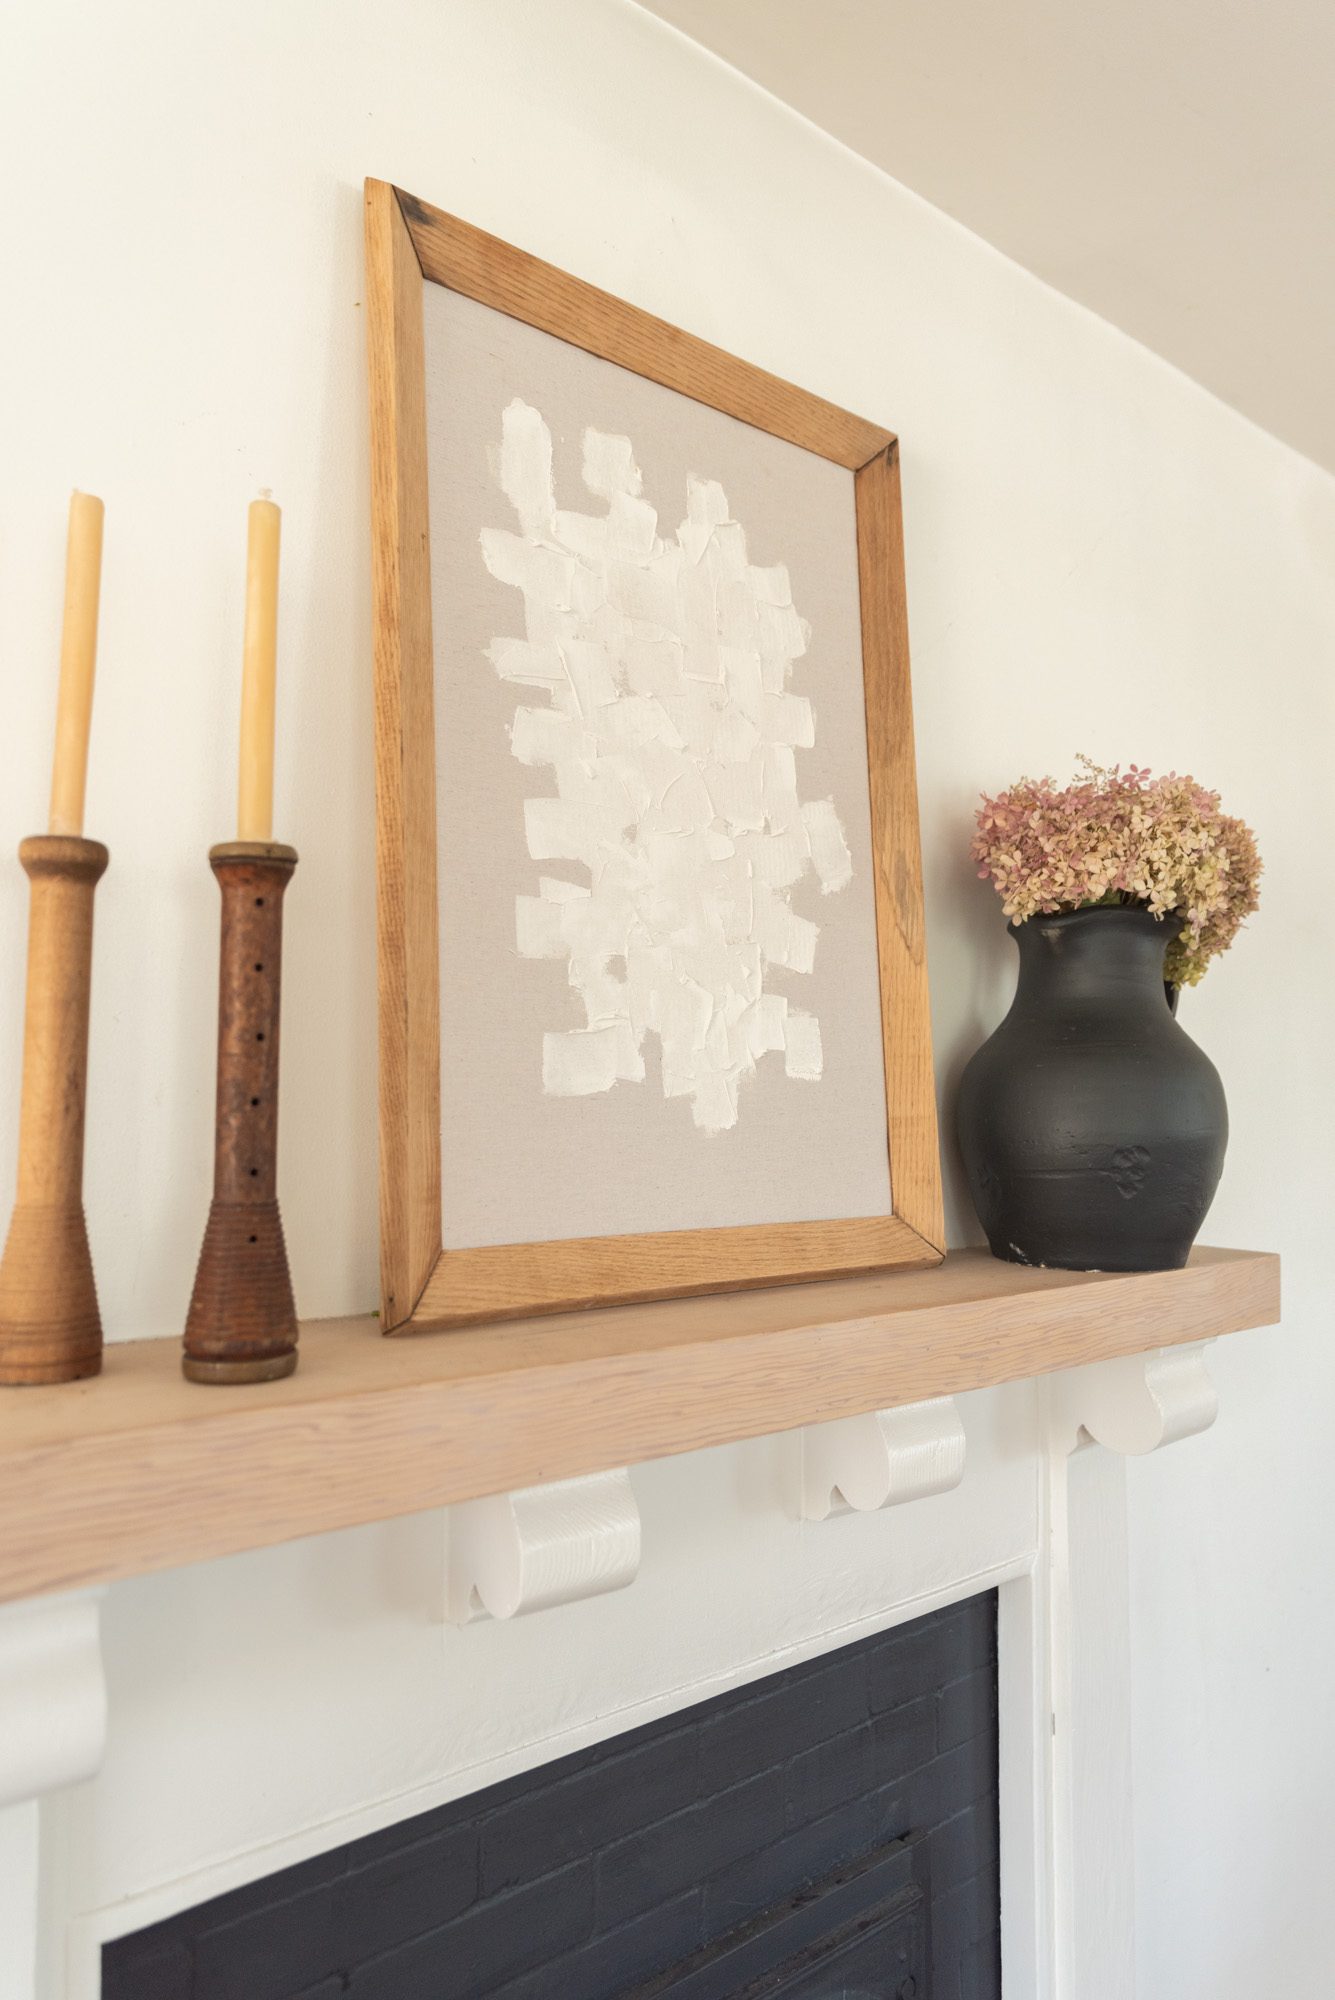 he Wild Decoelis | DIY Modern Minimal Art | mantle art made from dropcloth paint, dry wall compound and an old frame. Super easy.